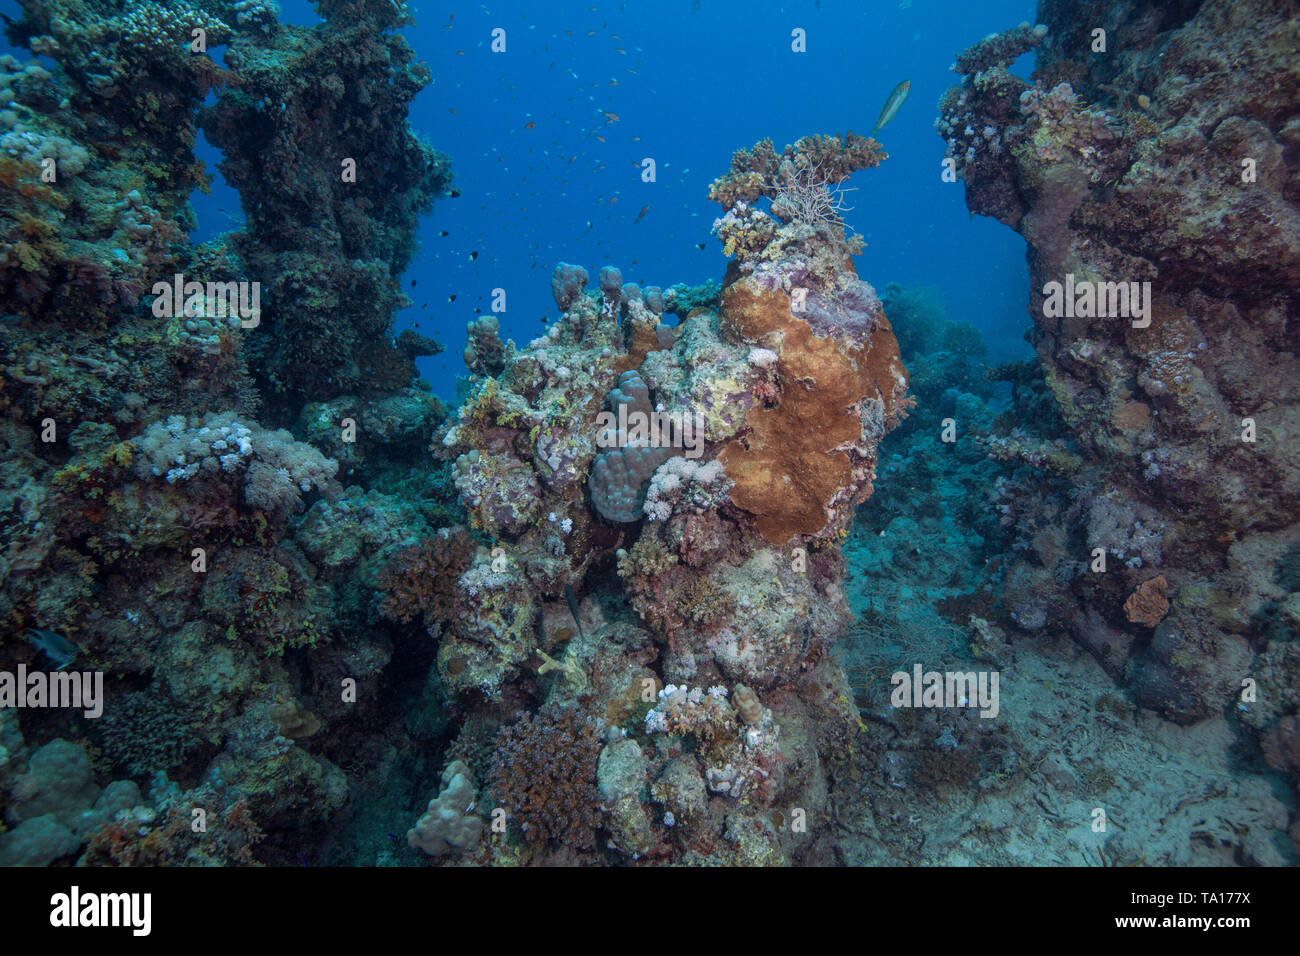 Few living remnants remain on dying coral reefs in the Red Sea. Southern Egypt. Stock Photo